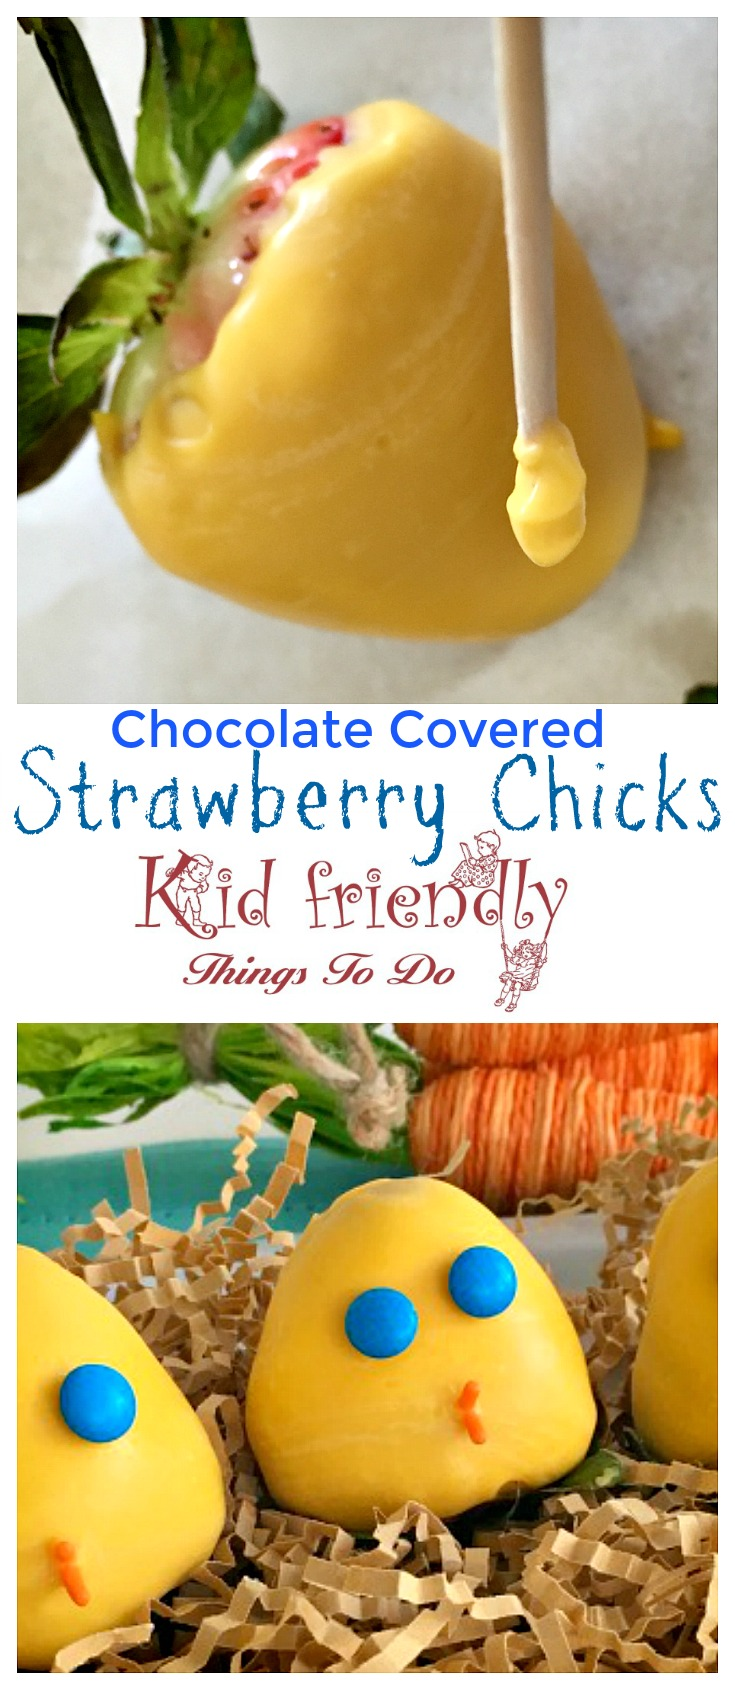 Chocolate Covered Strawberry Easter or Spring Chicks for a fun and easy food treat with the kids - www.kidfriendlythingstodo.com